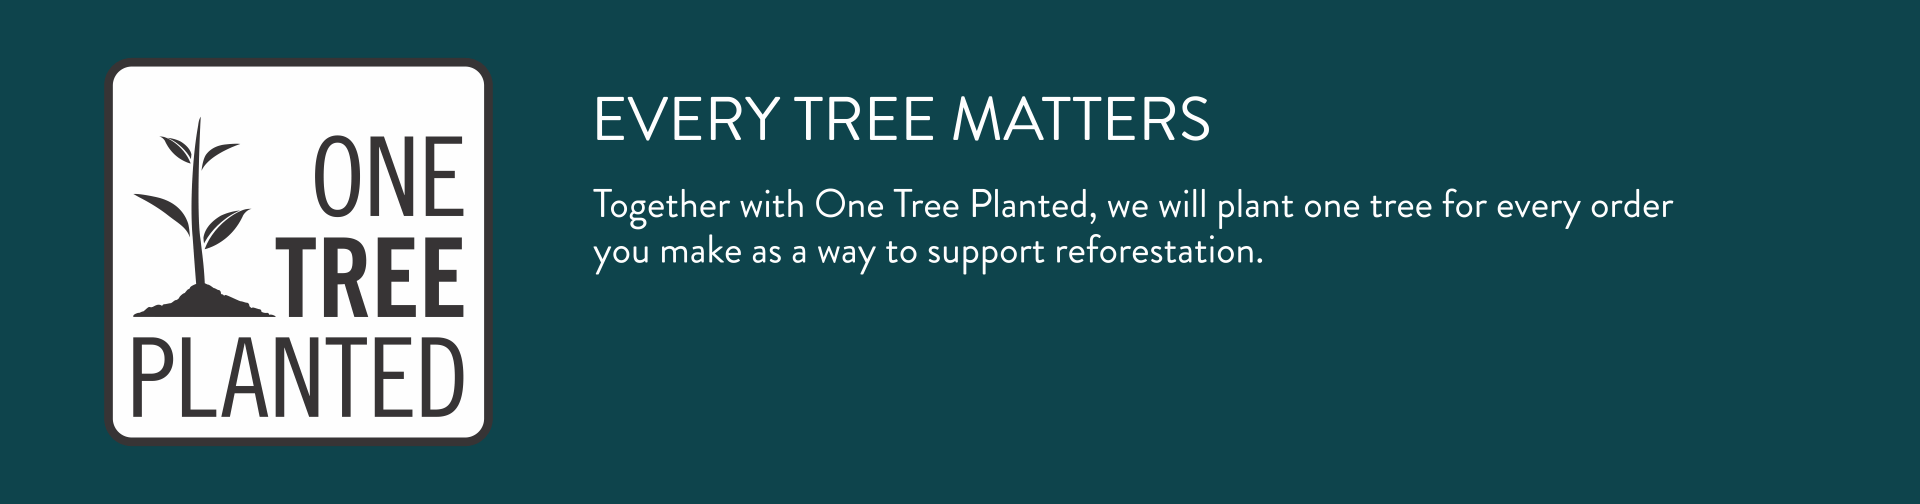 one tree planted banner